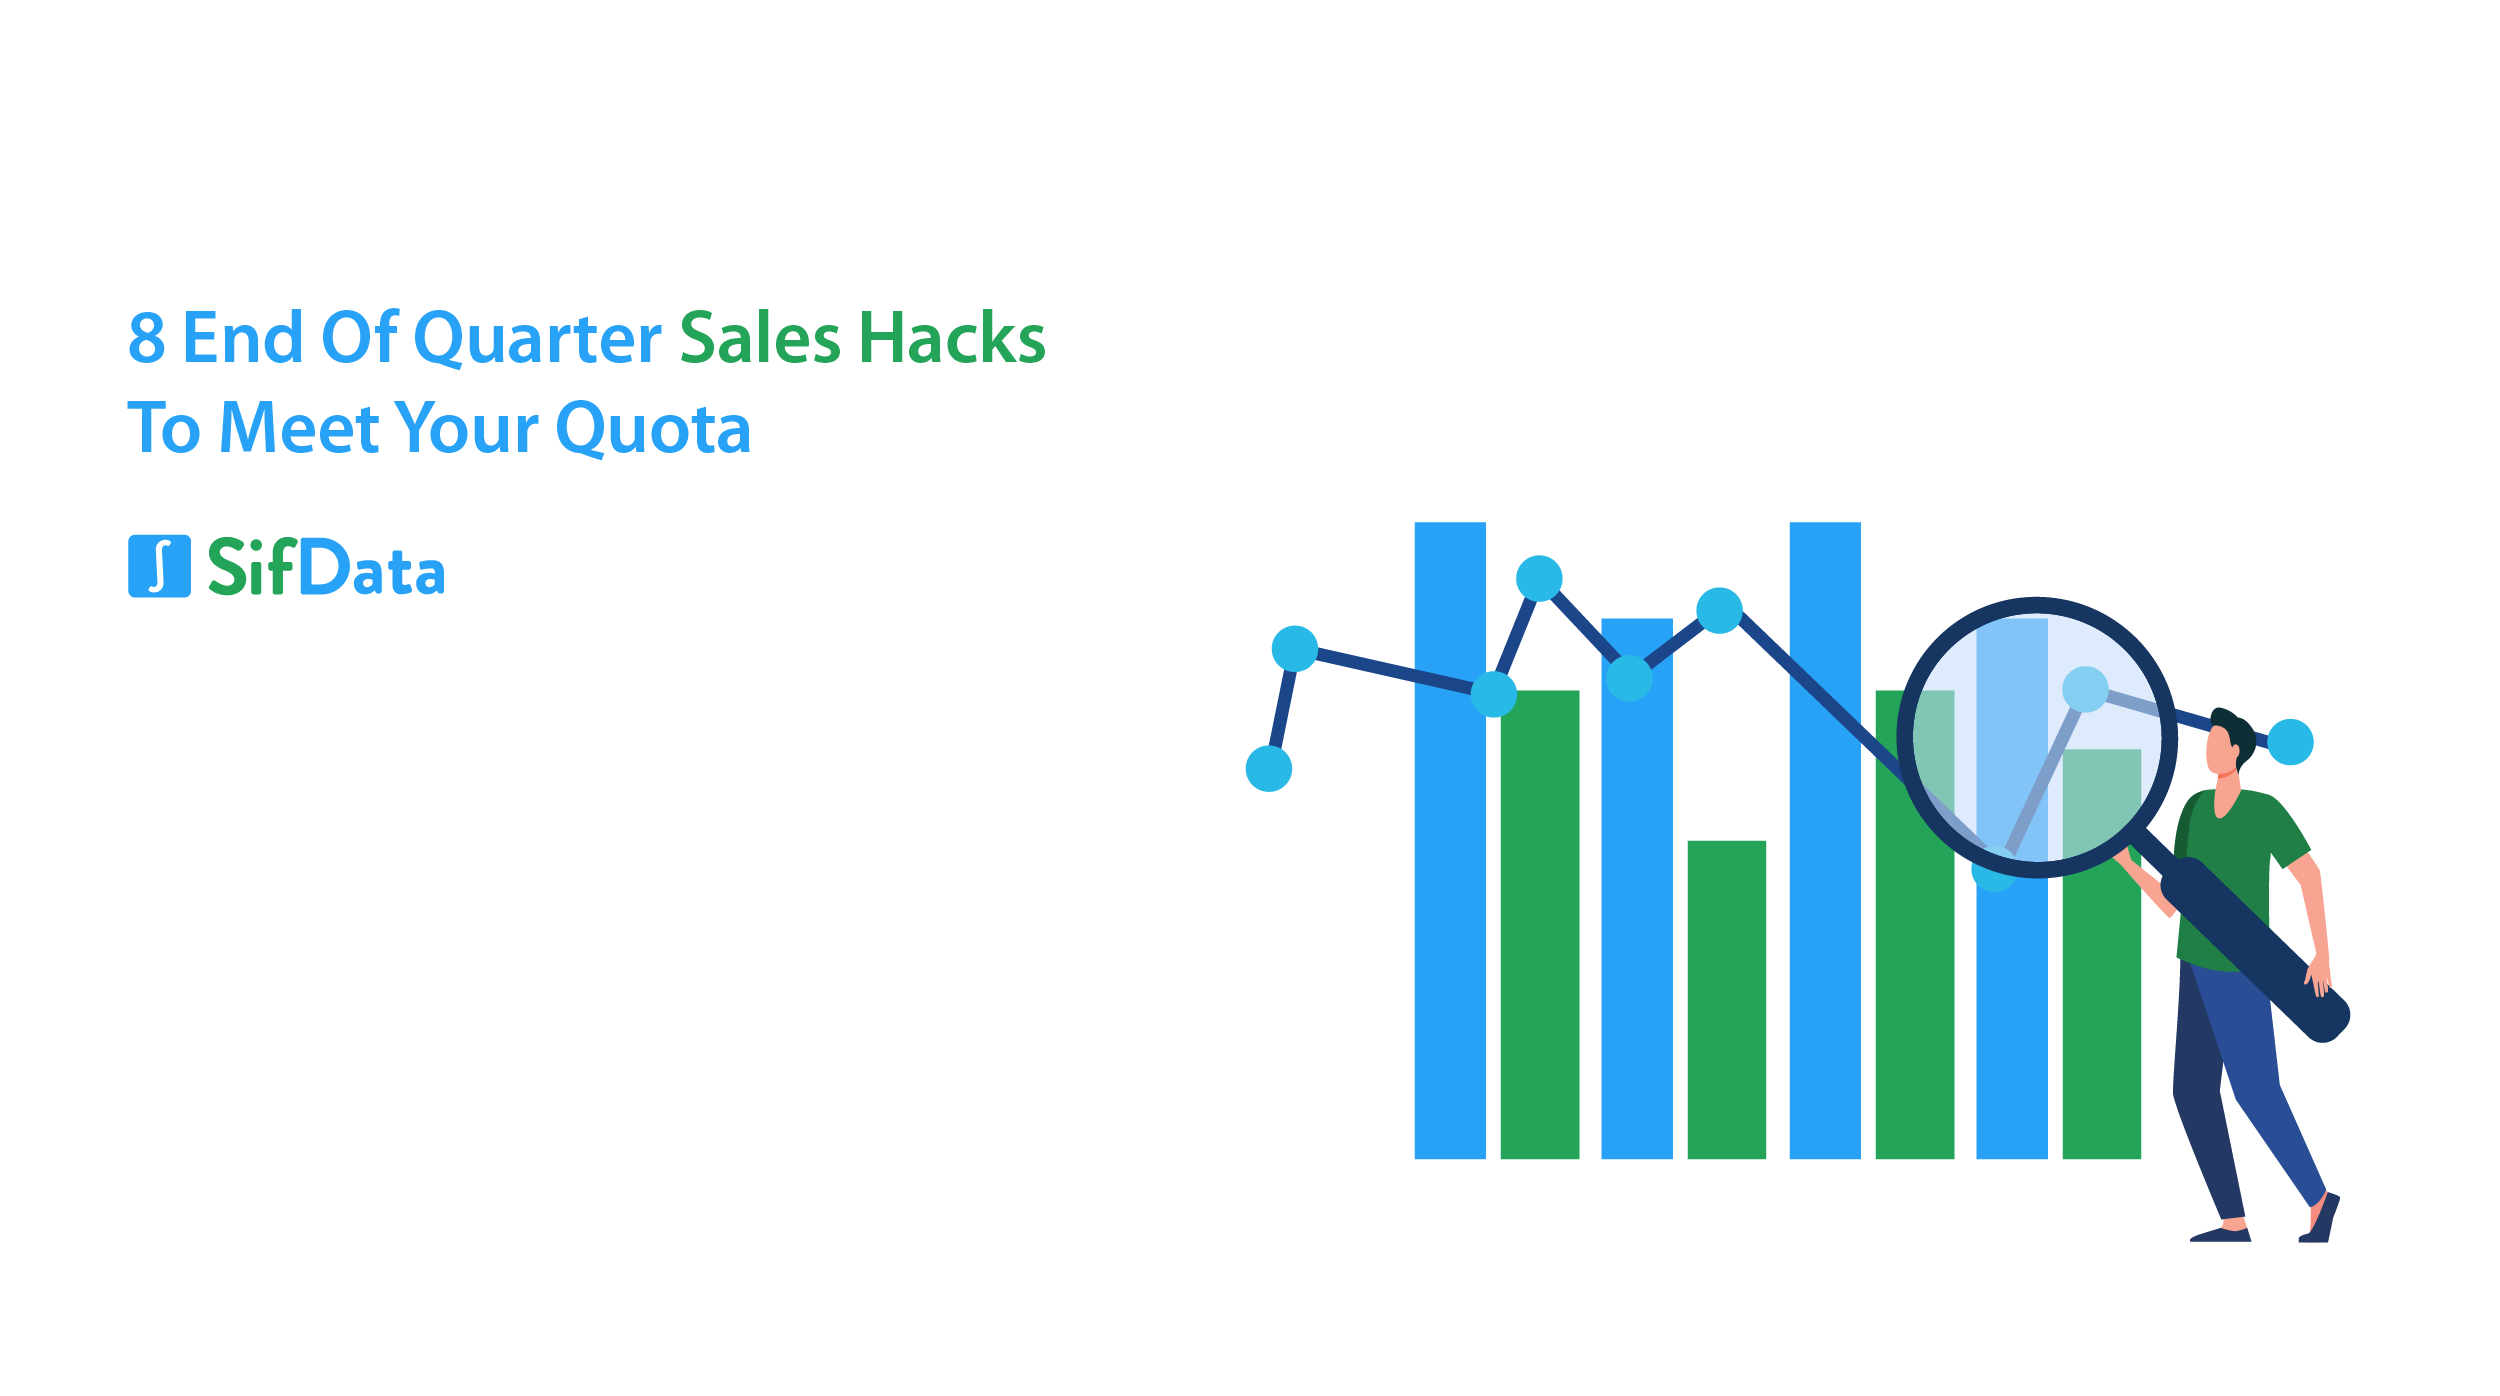 8 END OF QUARTER SALES HACKS TO MEET YOUR QUOTA